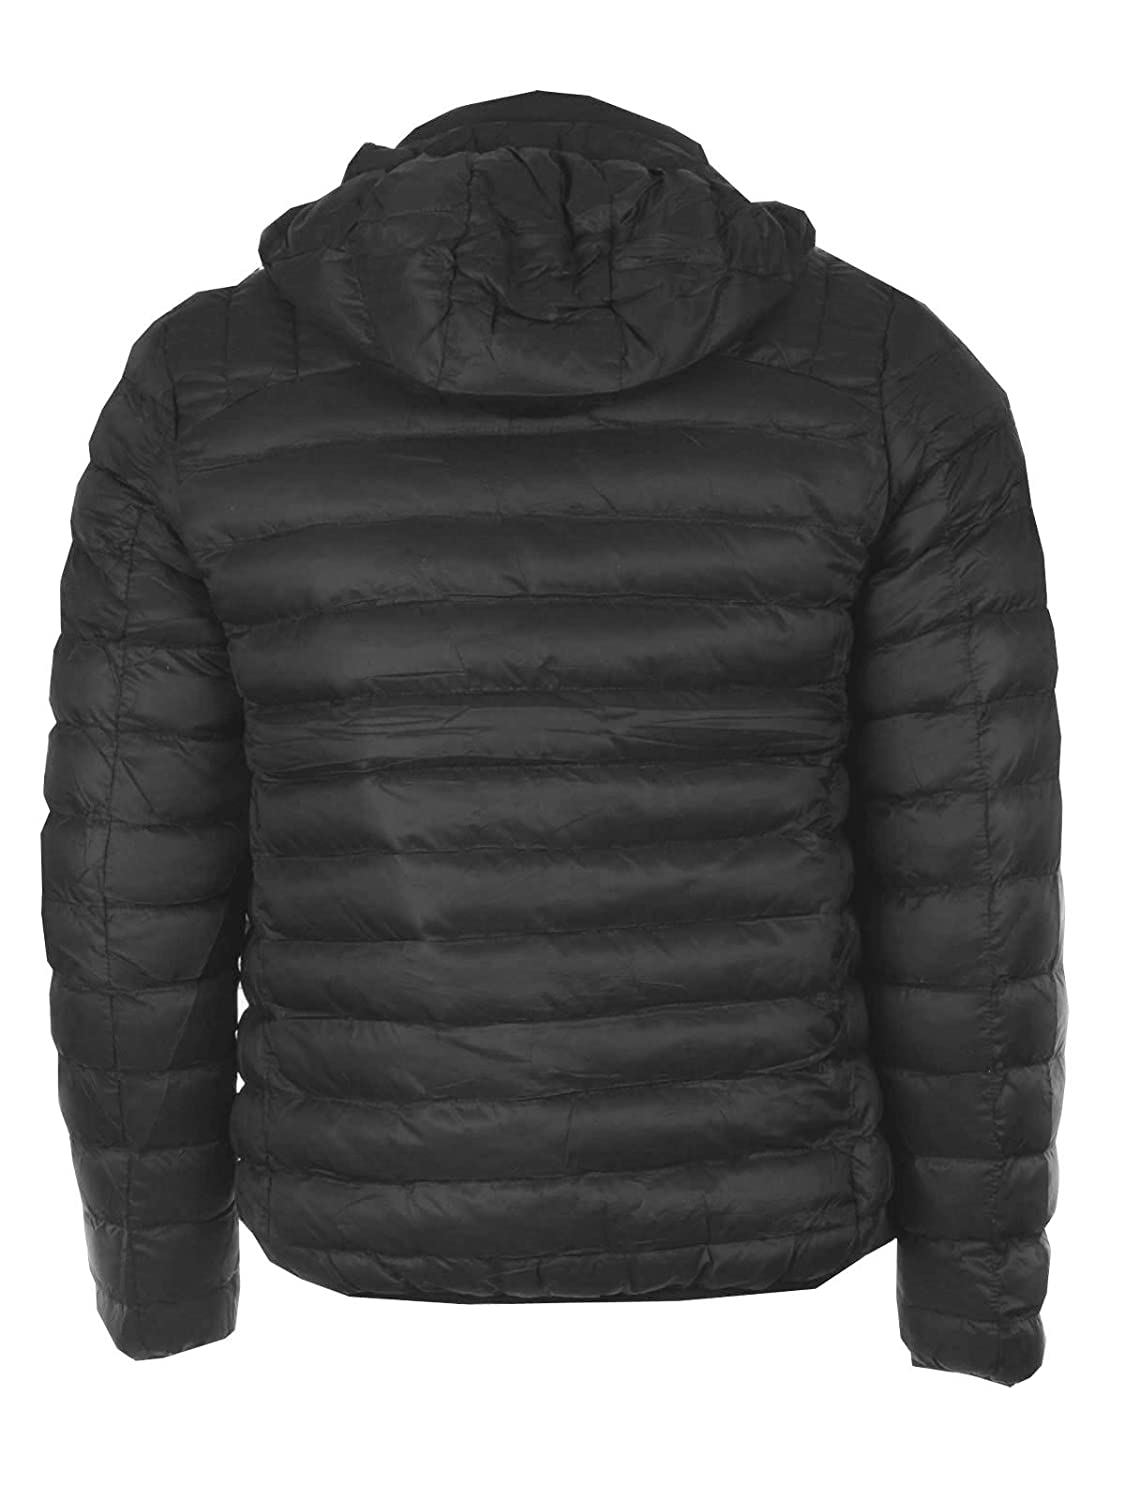 GG Gents Mens Quilted Padded Puffer Bubble Down Feel Hooded Jacket Coat